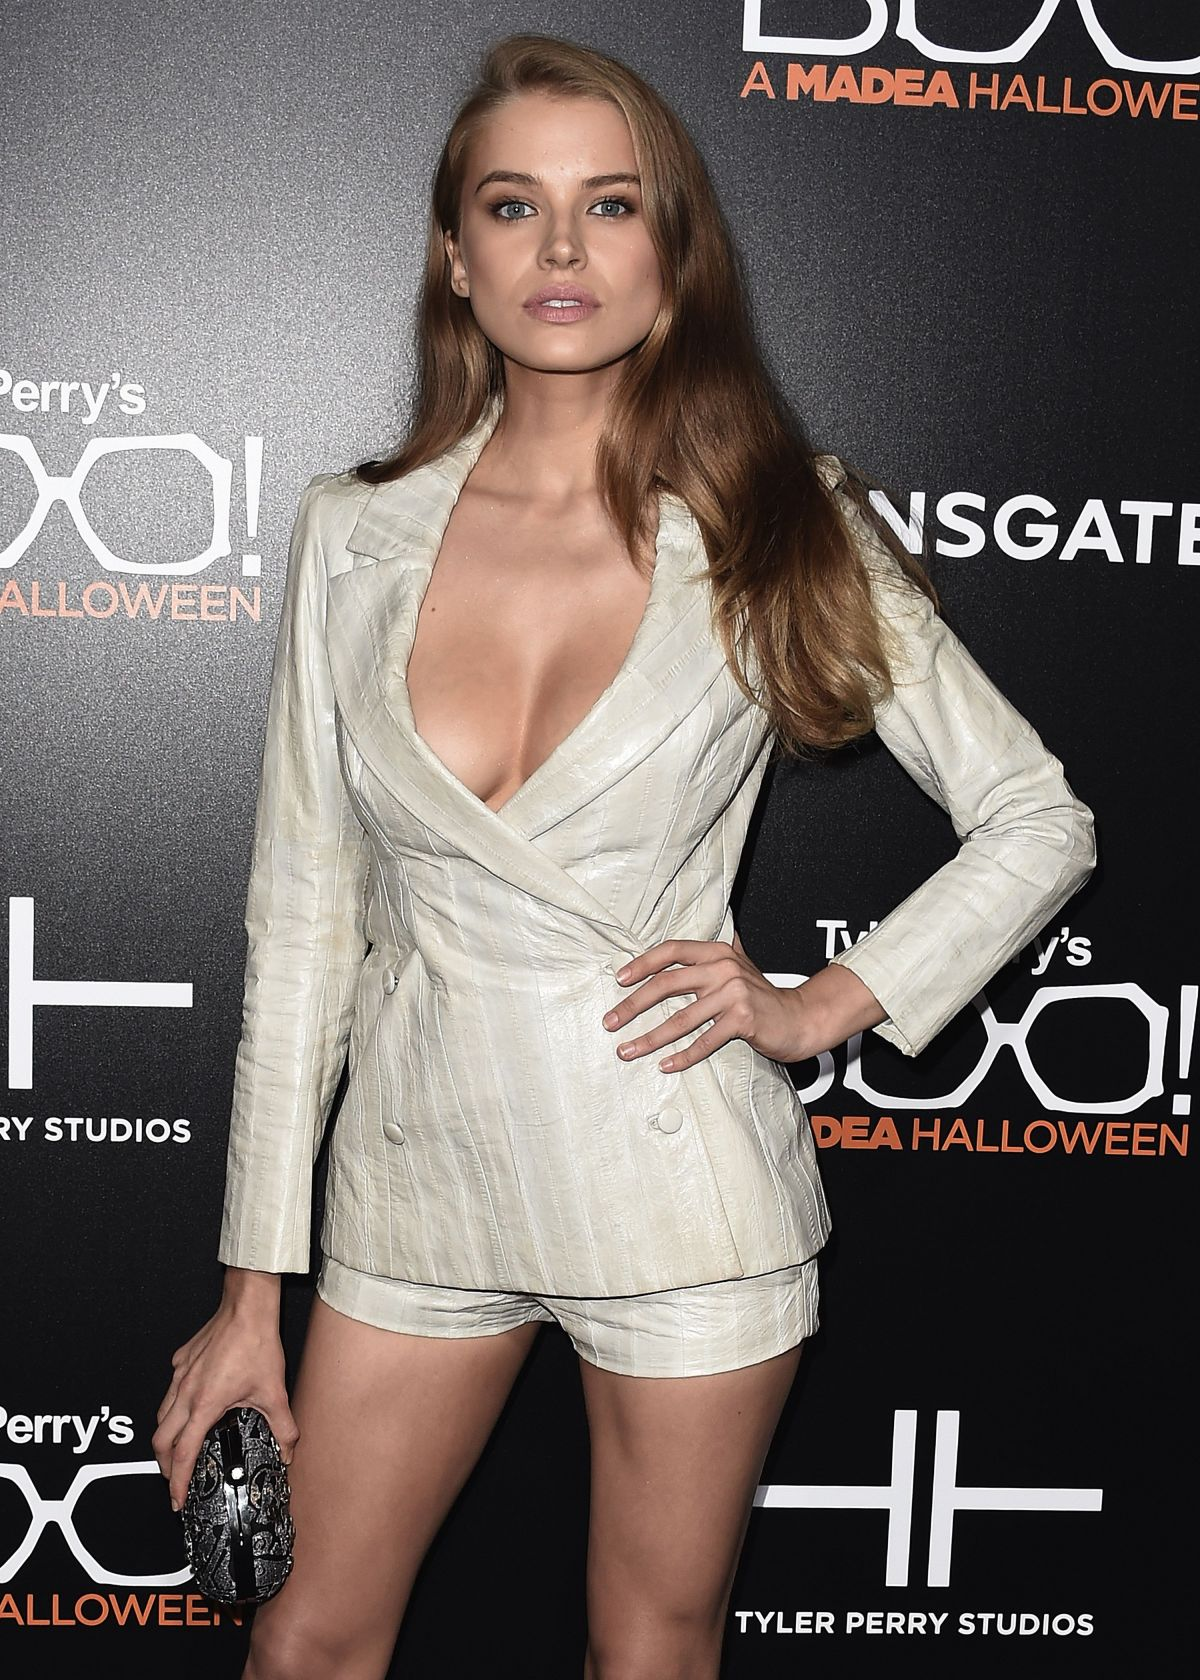 TANYA MITYUSHINA at 'Boo! A Maden Halloween' Premiere in Hollywood 10/18/2016